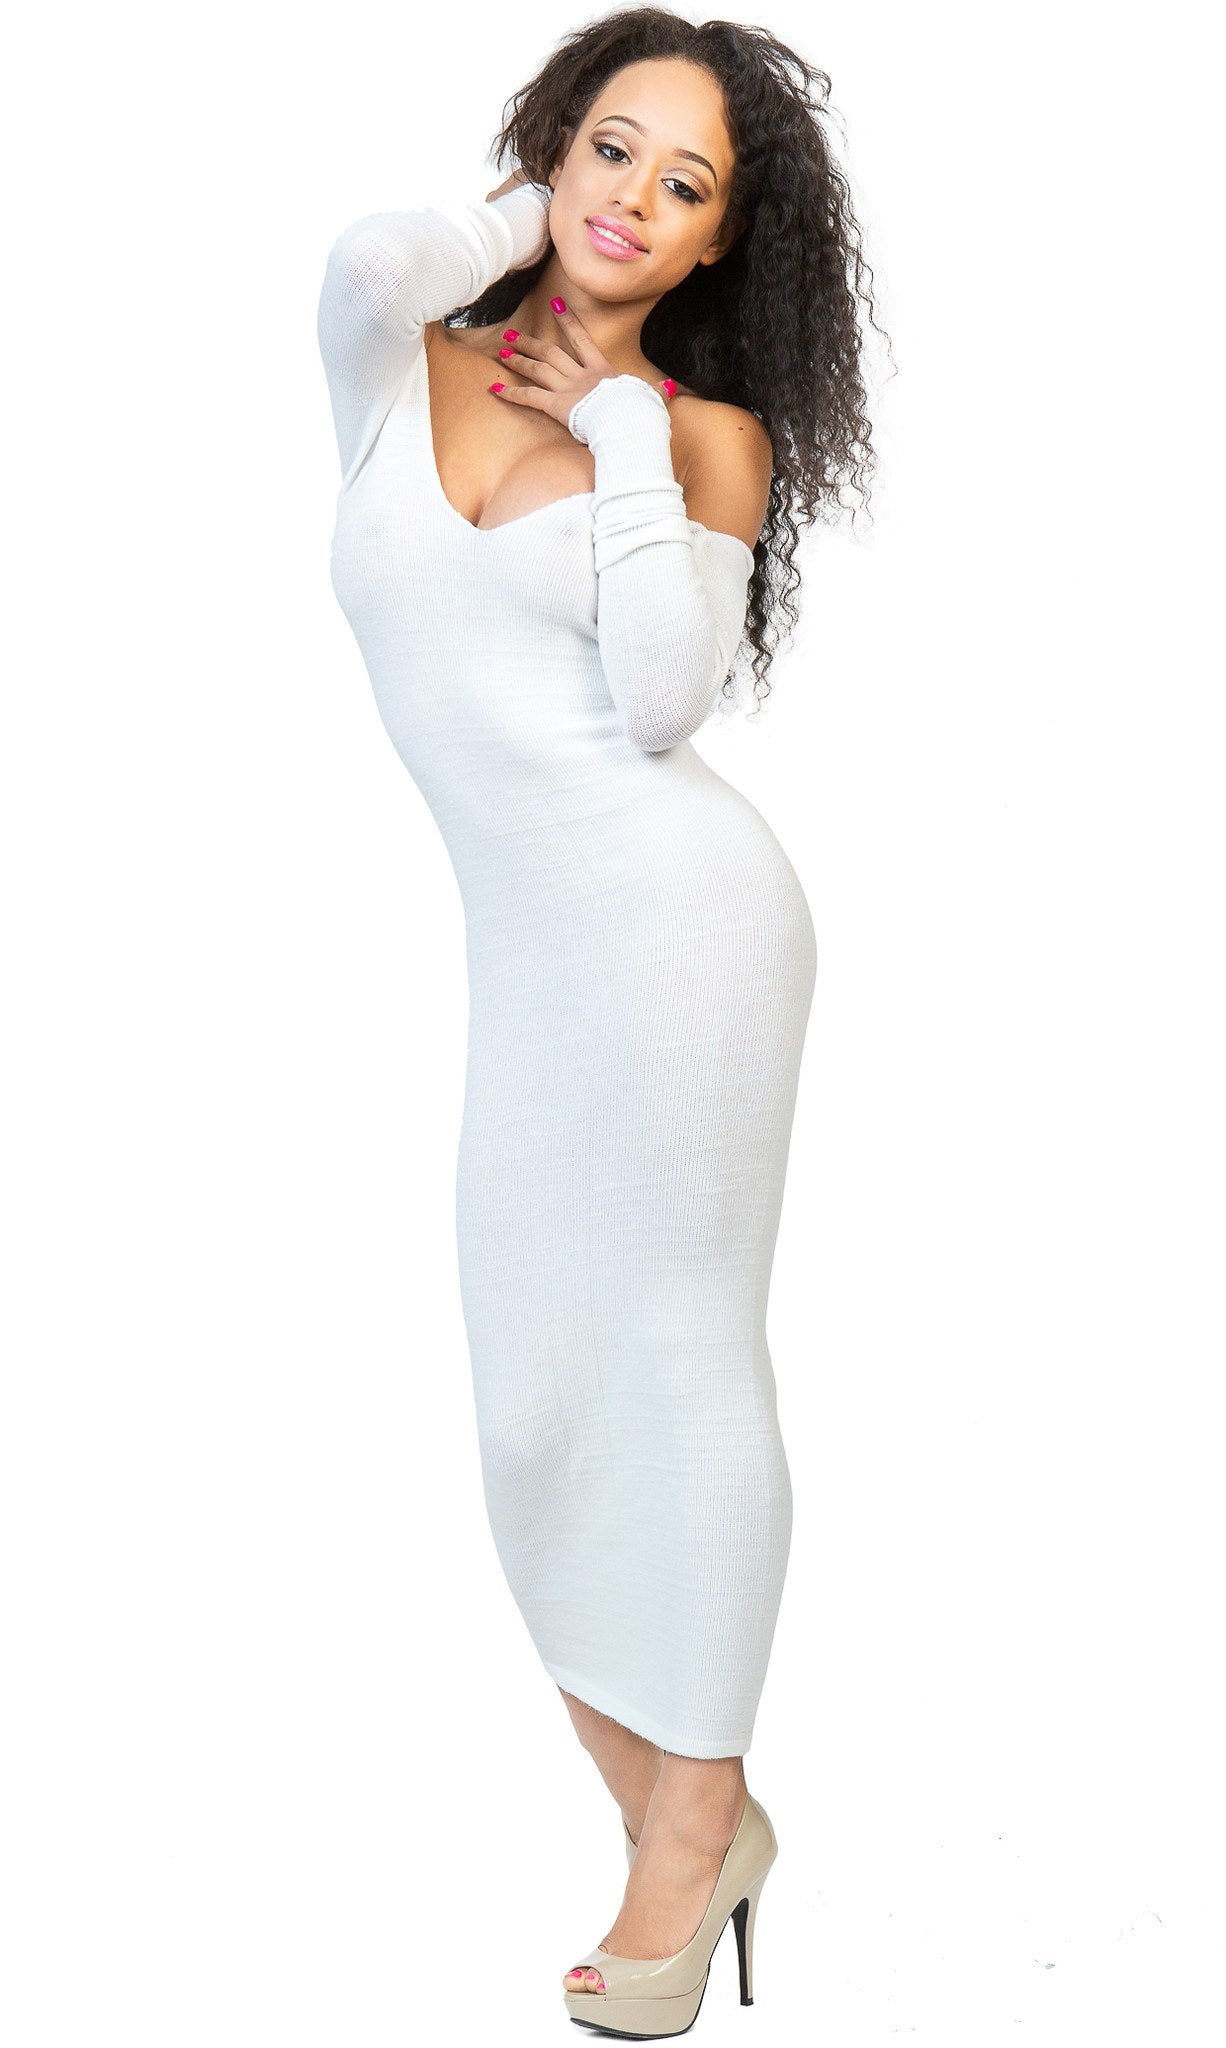 Elegant Ankle Length Cocktail Party Dress Stretch Knit KD dance Sexy, Warm Cozy Maxi Dress Made USA @KDdanceNewYork #MadeInUSA - 2